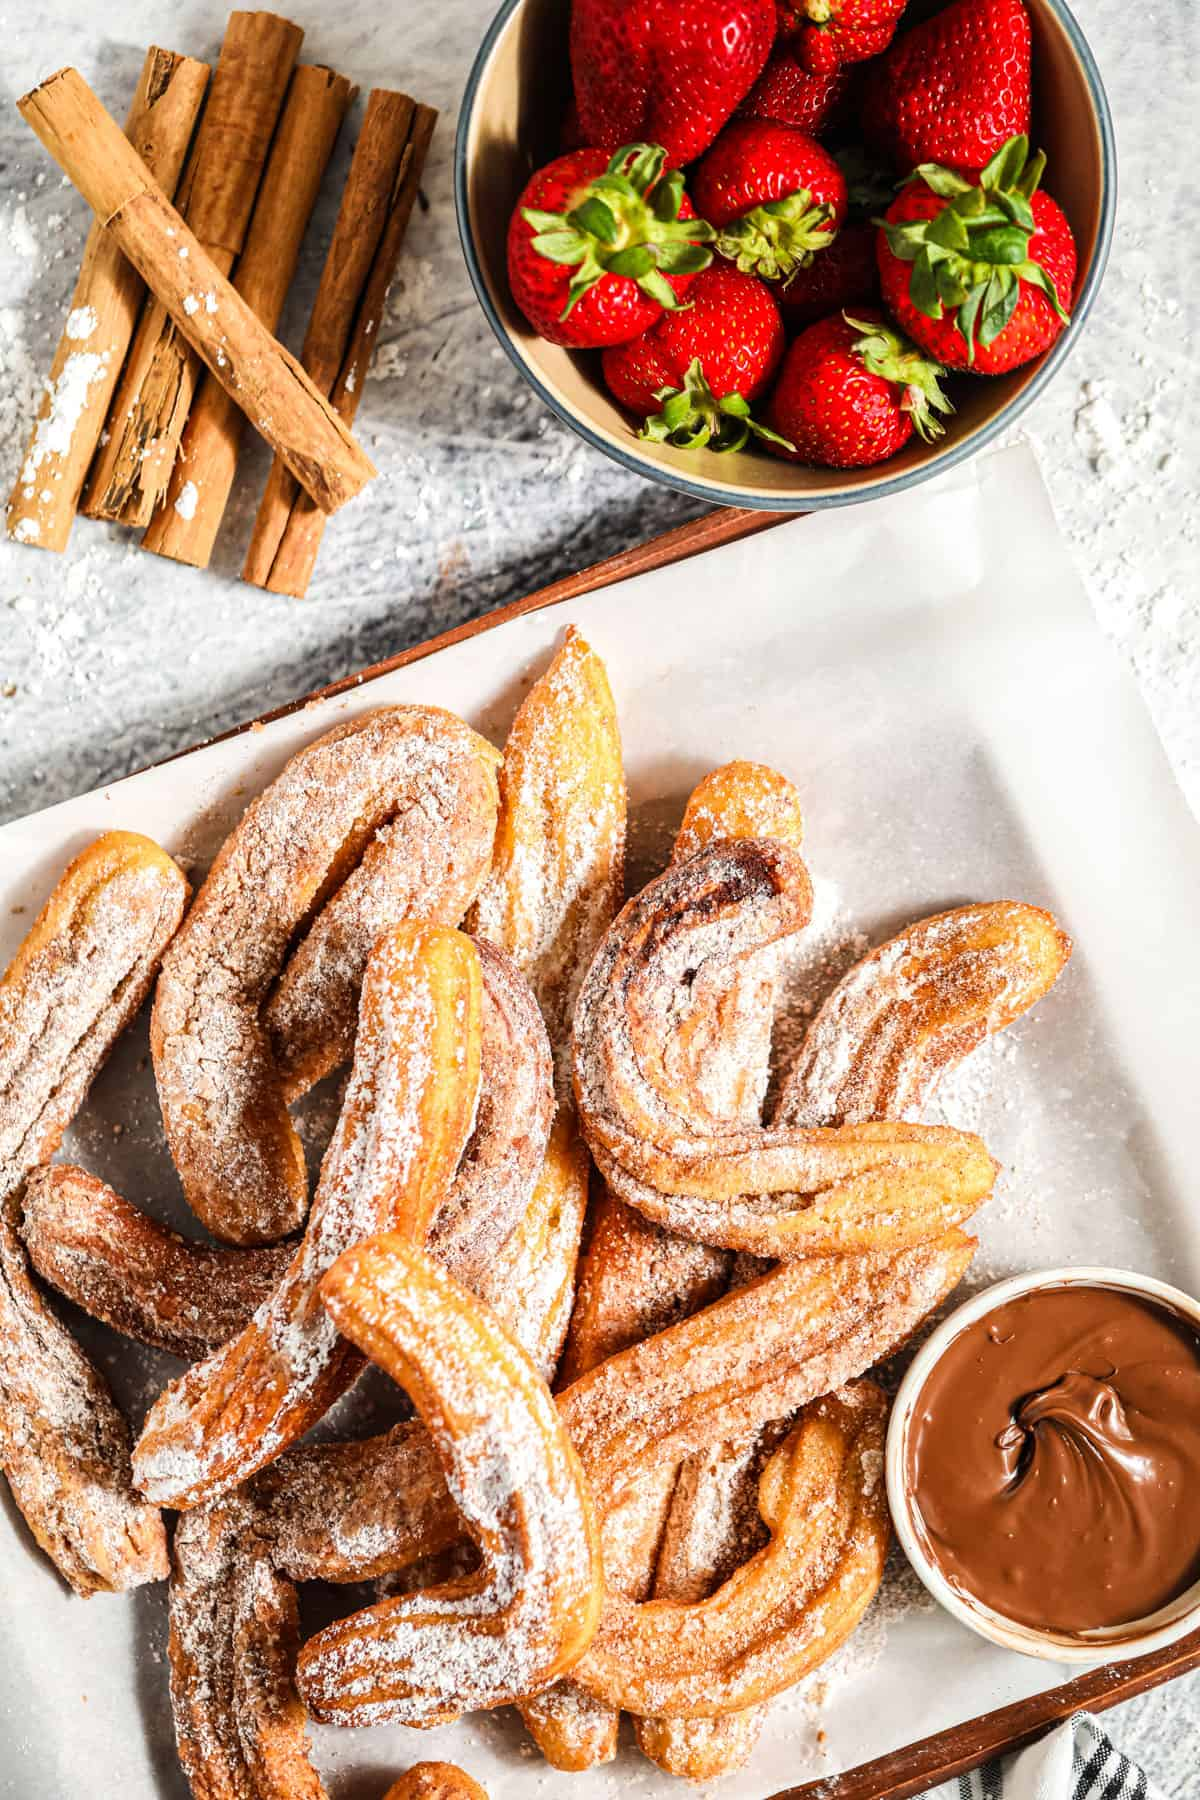 a tabletop of churros with strawberries